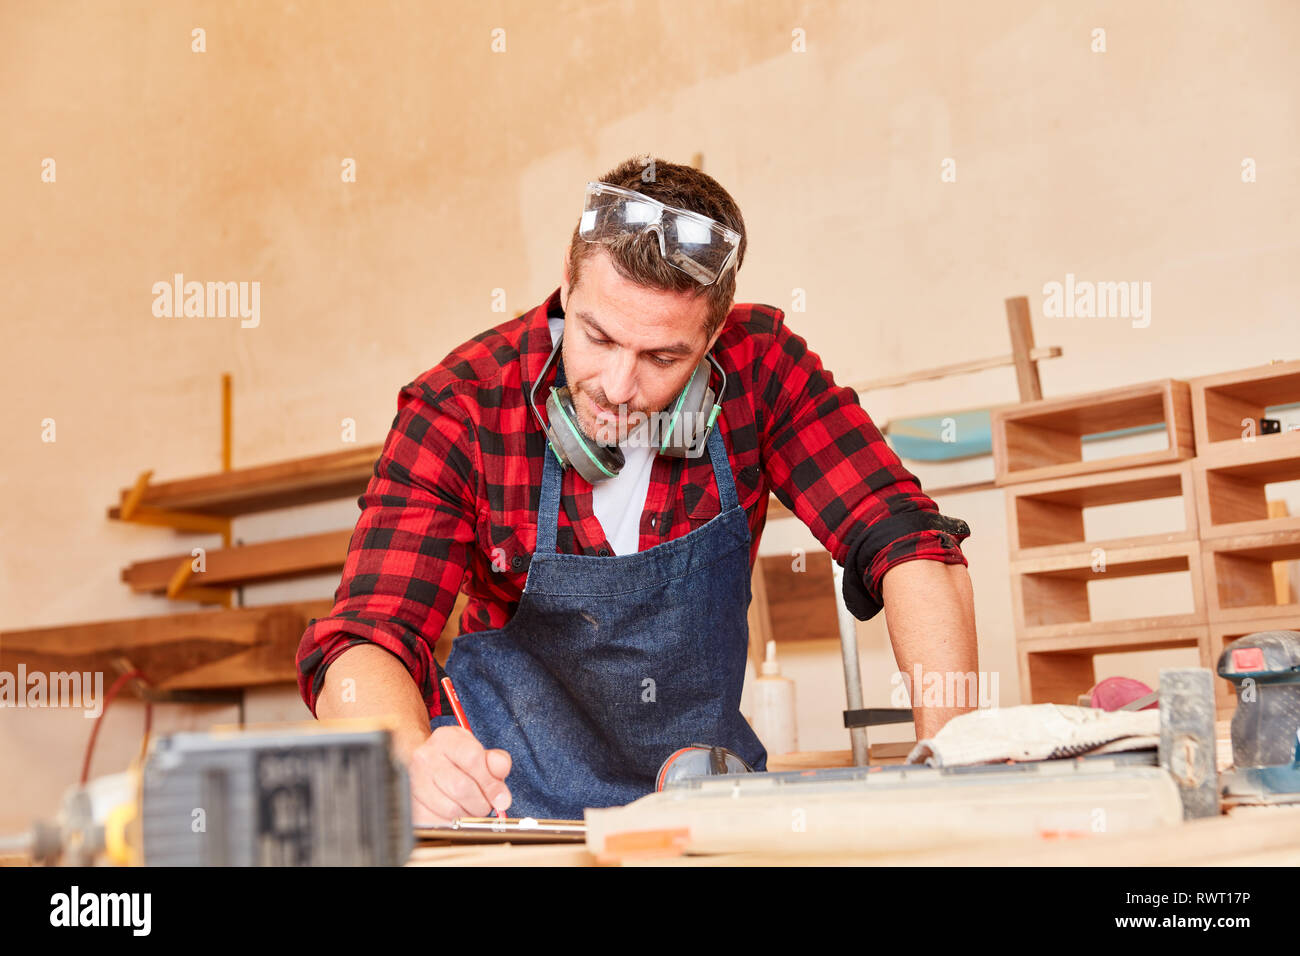 Young man as a carpenter or carpenter with checklist while scheduling - Stock Image